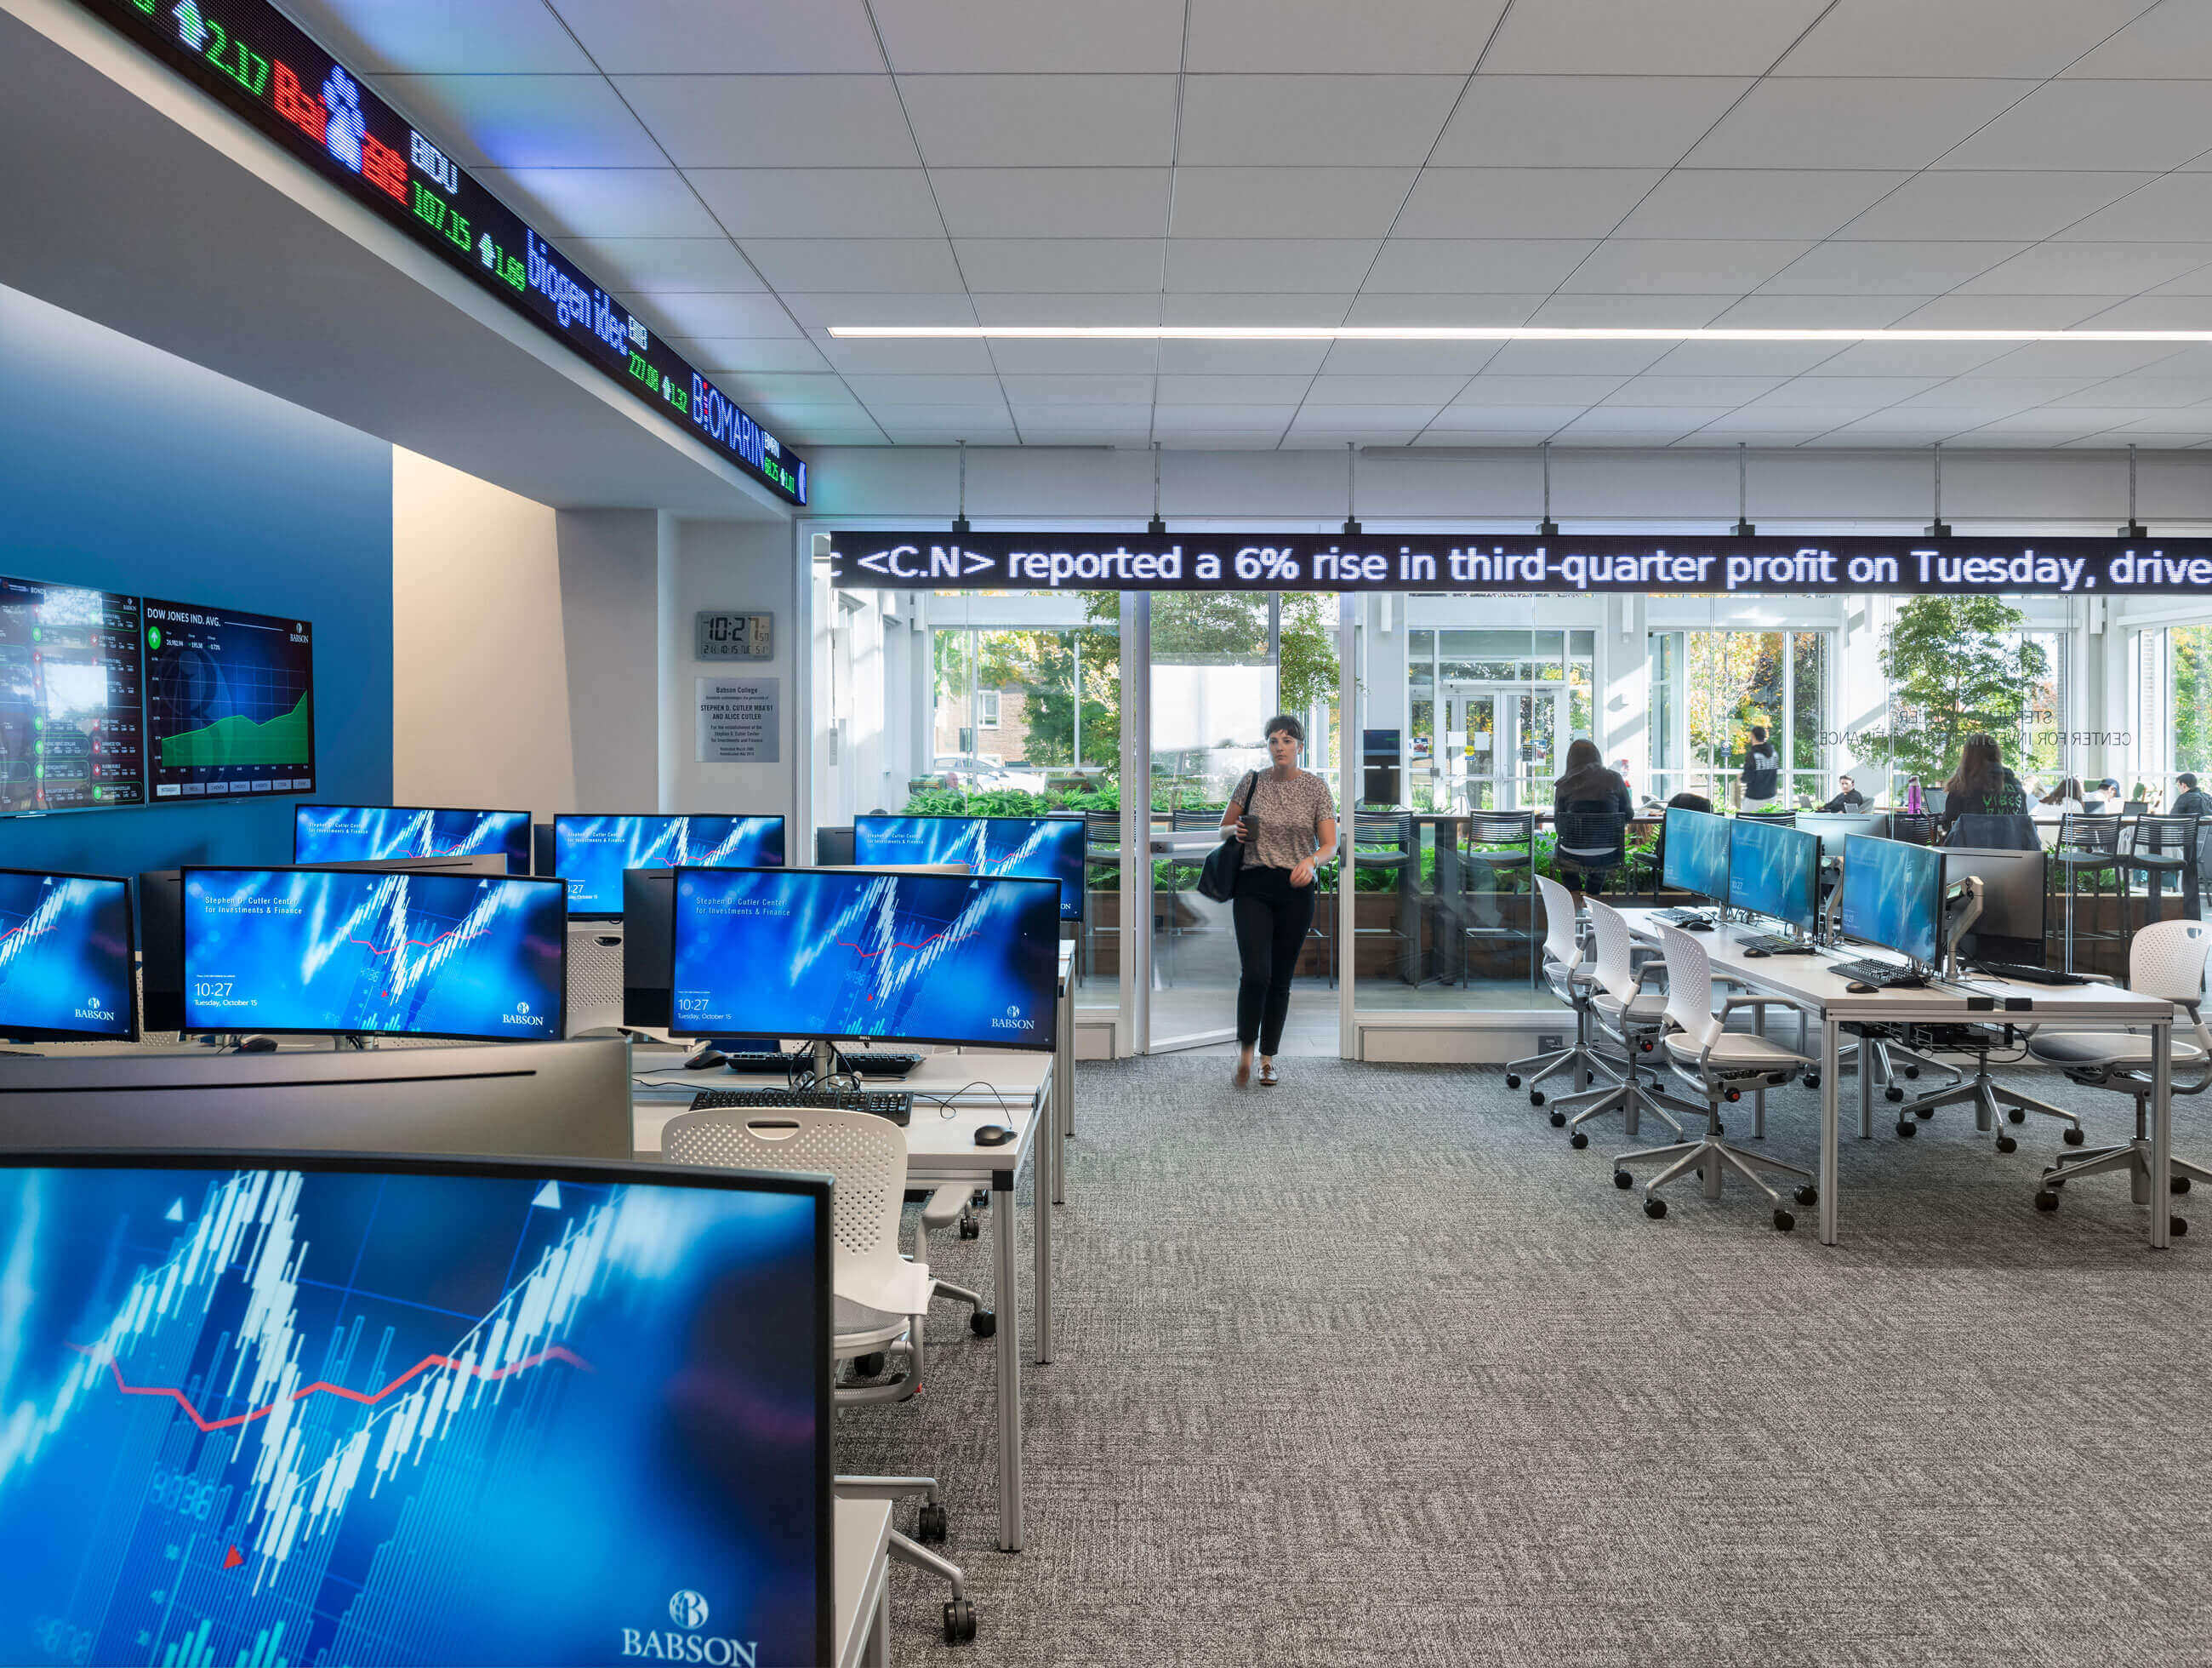 Woman walking into the Cutler Center for Investments and Finance, with blue computer screens to the left and a stock market band across the top of the room.